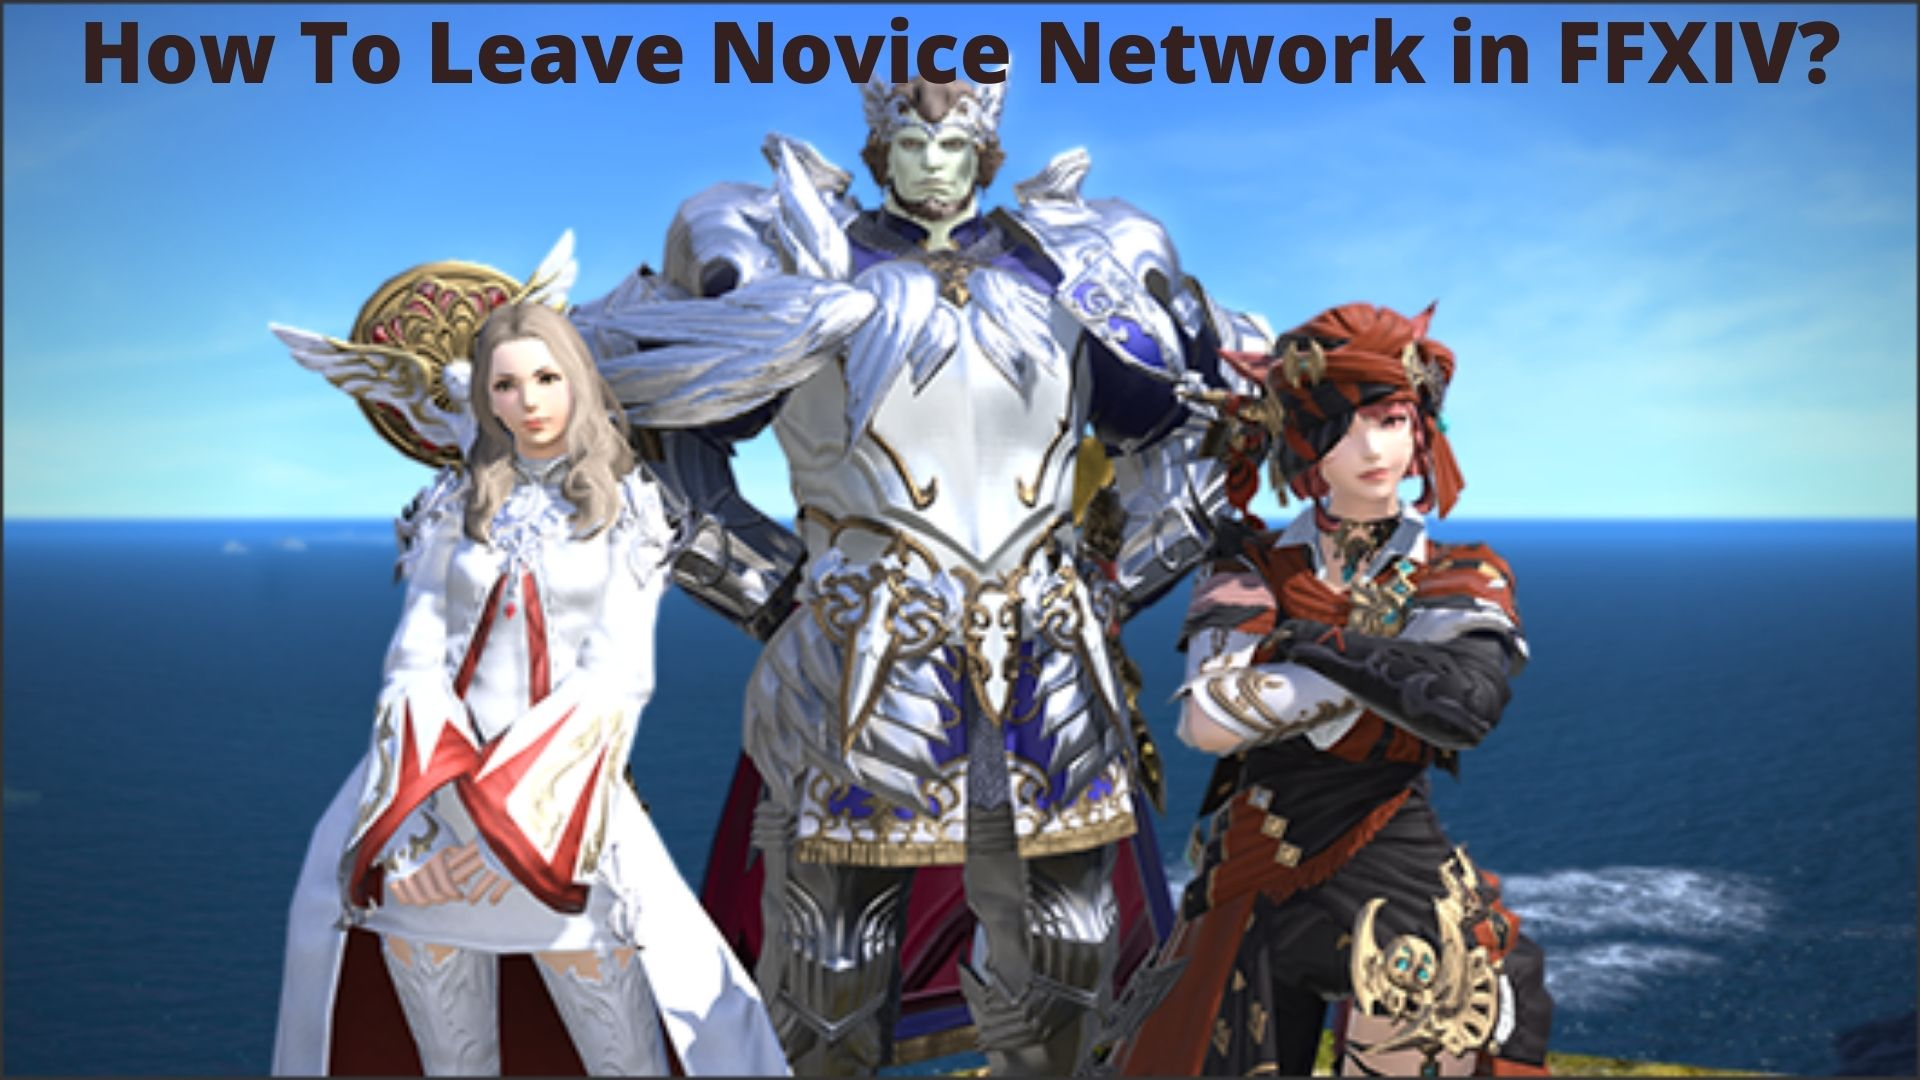 How To Leave Novice Network in FFXIV